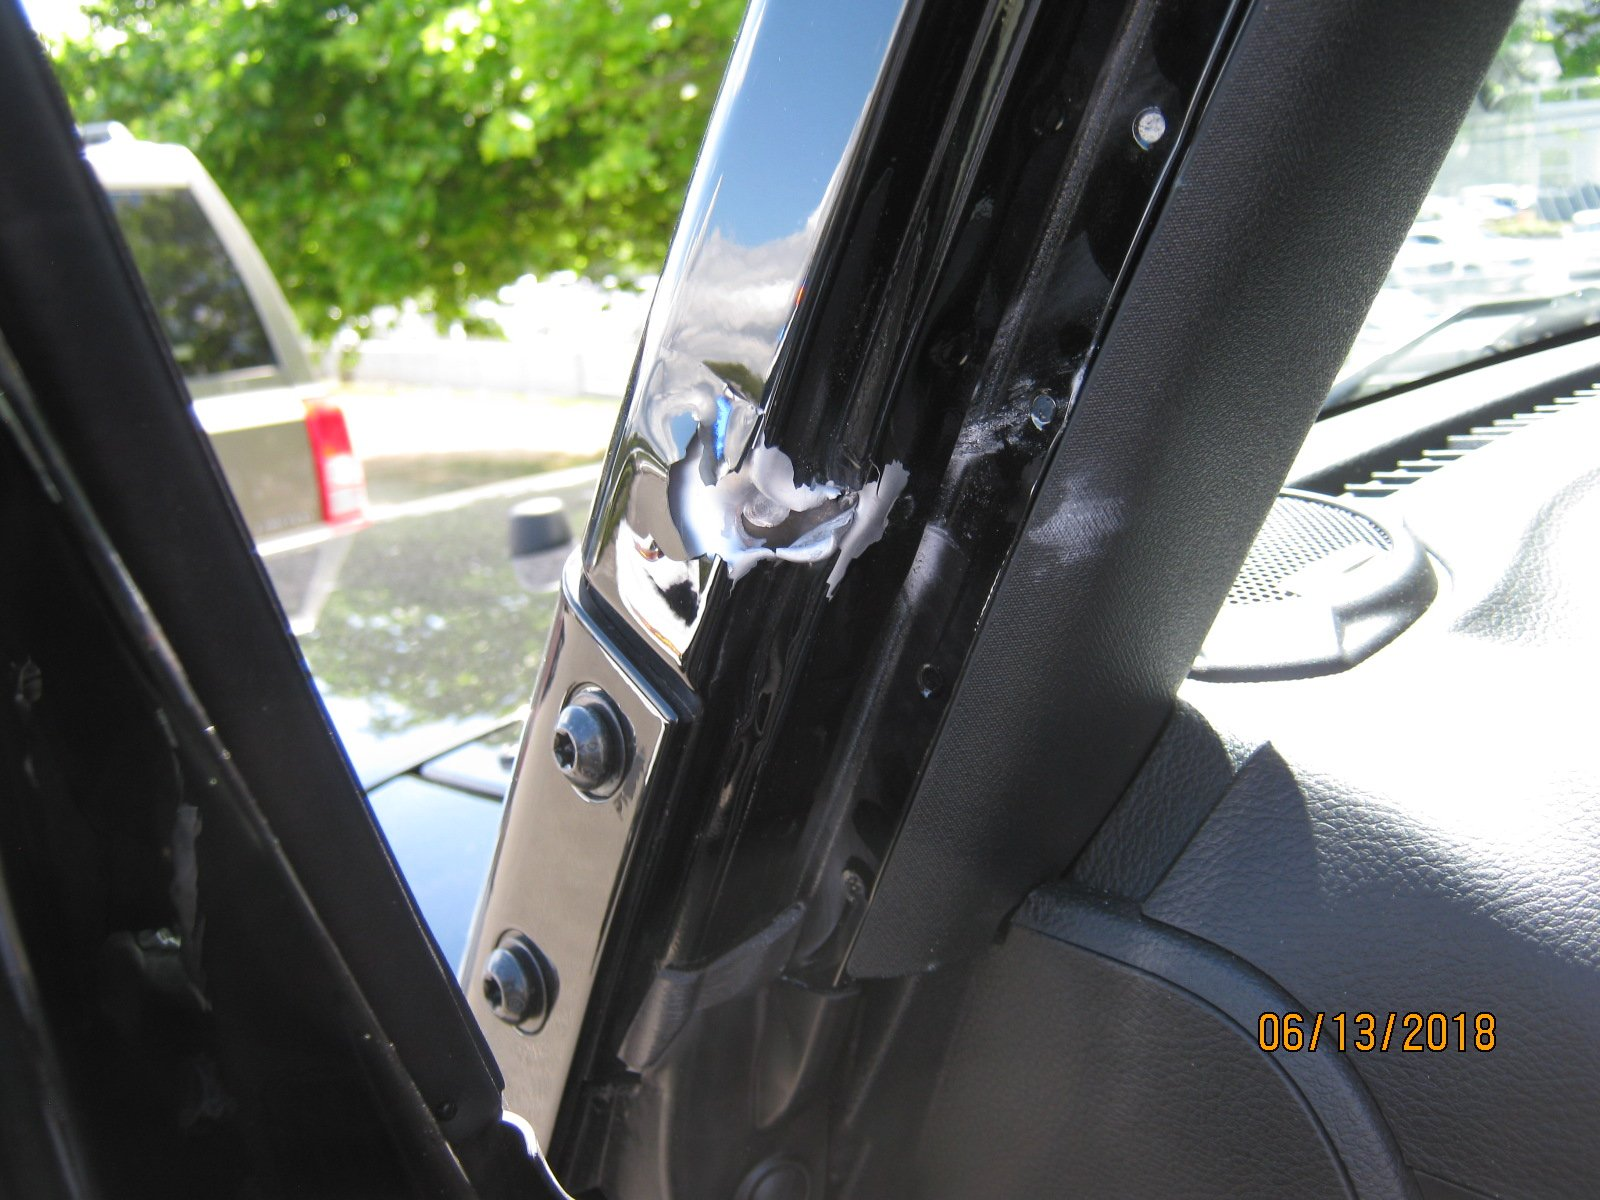 Troopers investigating a shooting that left 4 cars with bullet holes along SR-509 on June 13, 2018. (Washington State Patrol Photo)